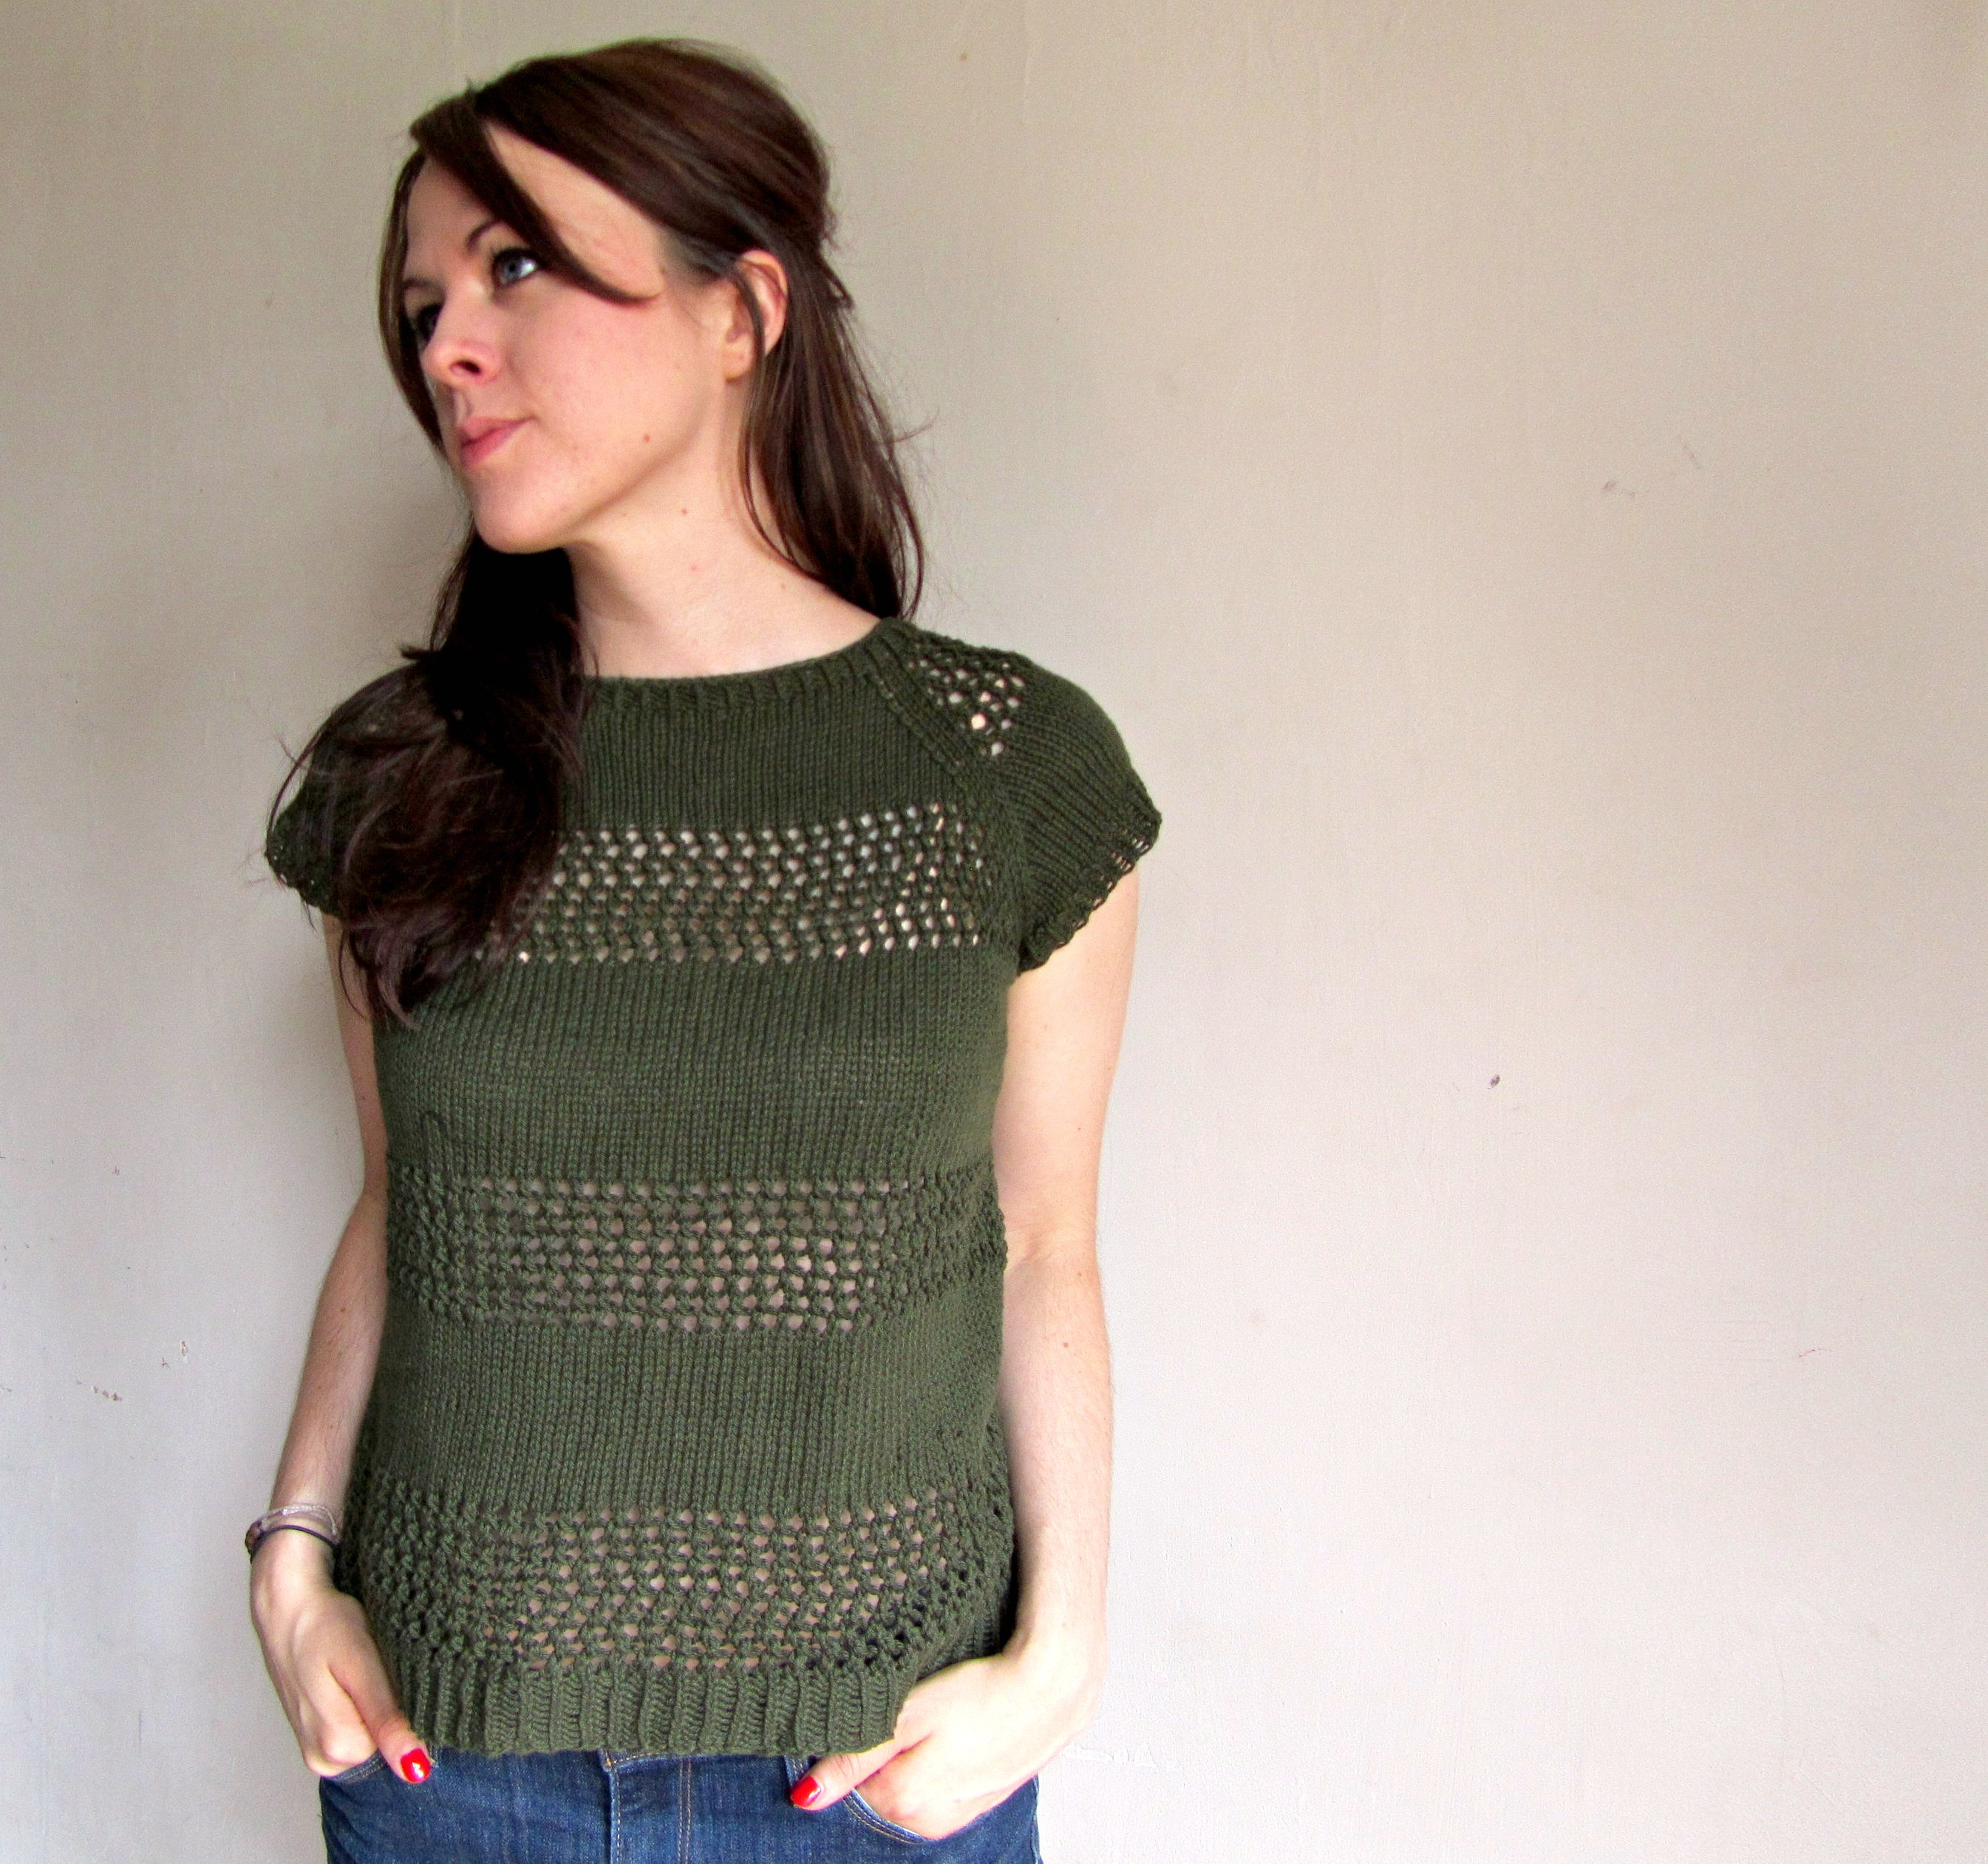 Easy Summer Sweaters To Knit - Cardigan With Buttons